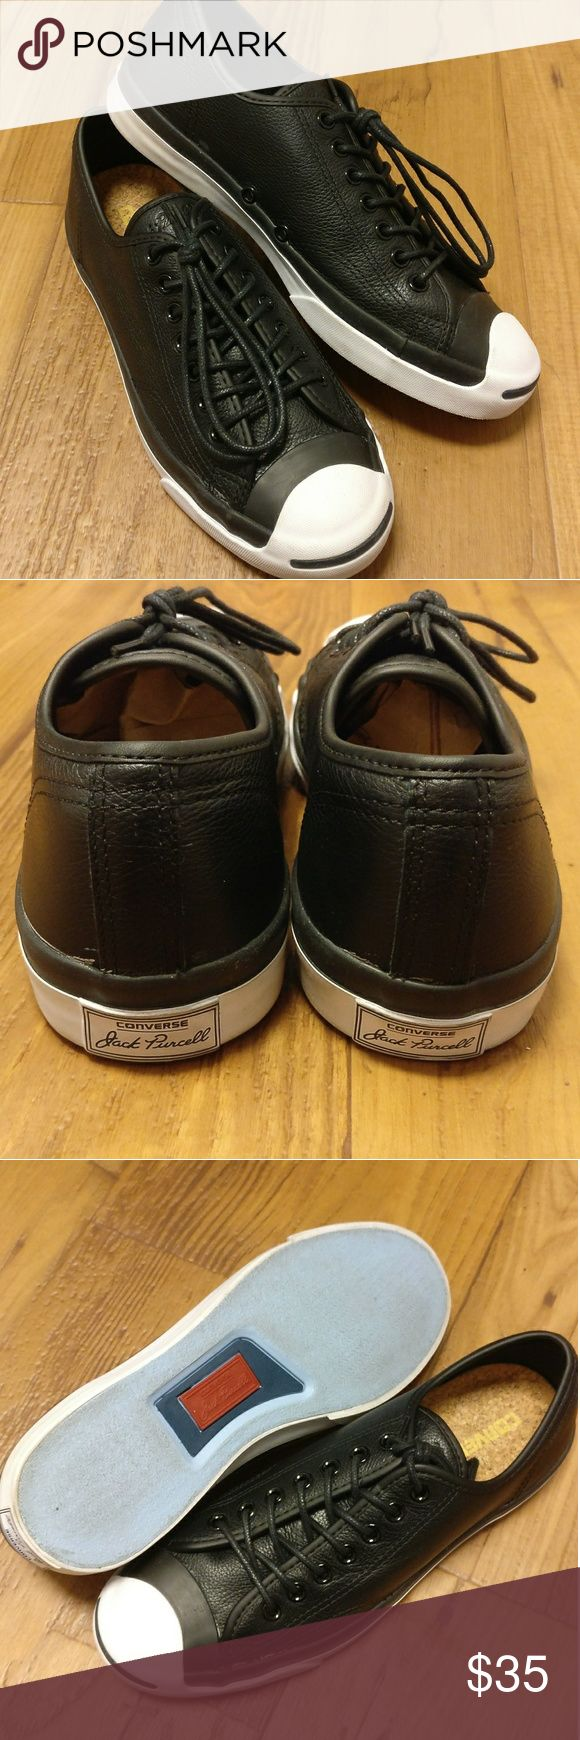 Black Leather Converse Jack Purcell Black Leather Converse Jack Purcell.  Unisex Style / Men's size 8 / Women's Size 10  New Without Tags.  There is a slight blemish around the bottom of the leather, as shown in the last 2 pictures. Converse Shoes Sneakers